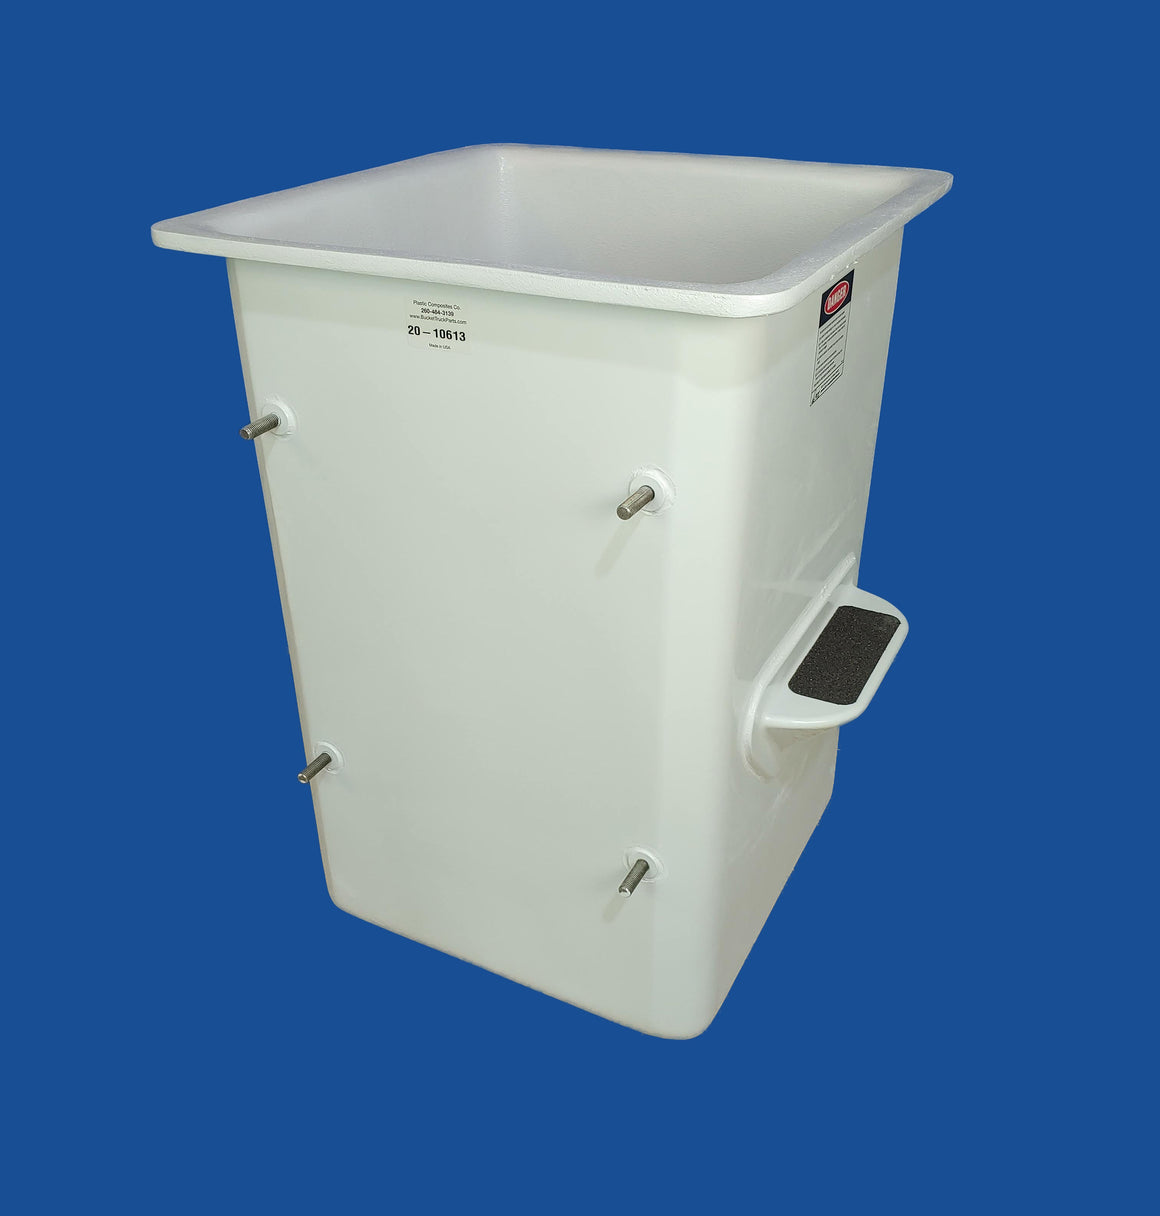 "Buckets - Hi Ranger - XT - 24"" x 24"" x 39"" - Bucket Truck Parts"